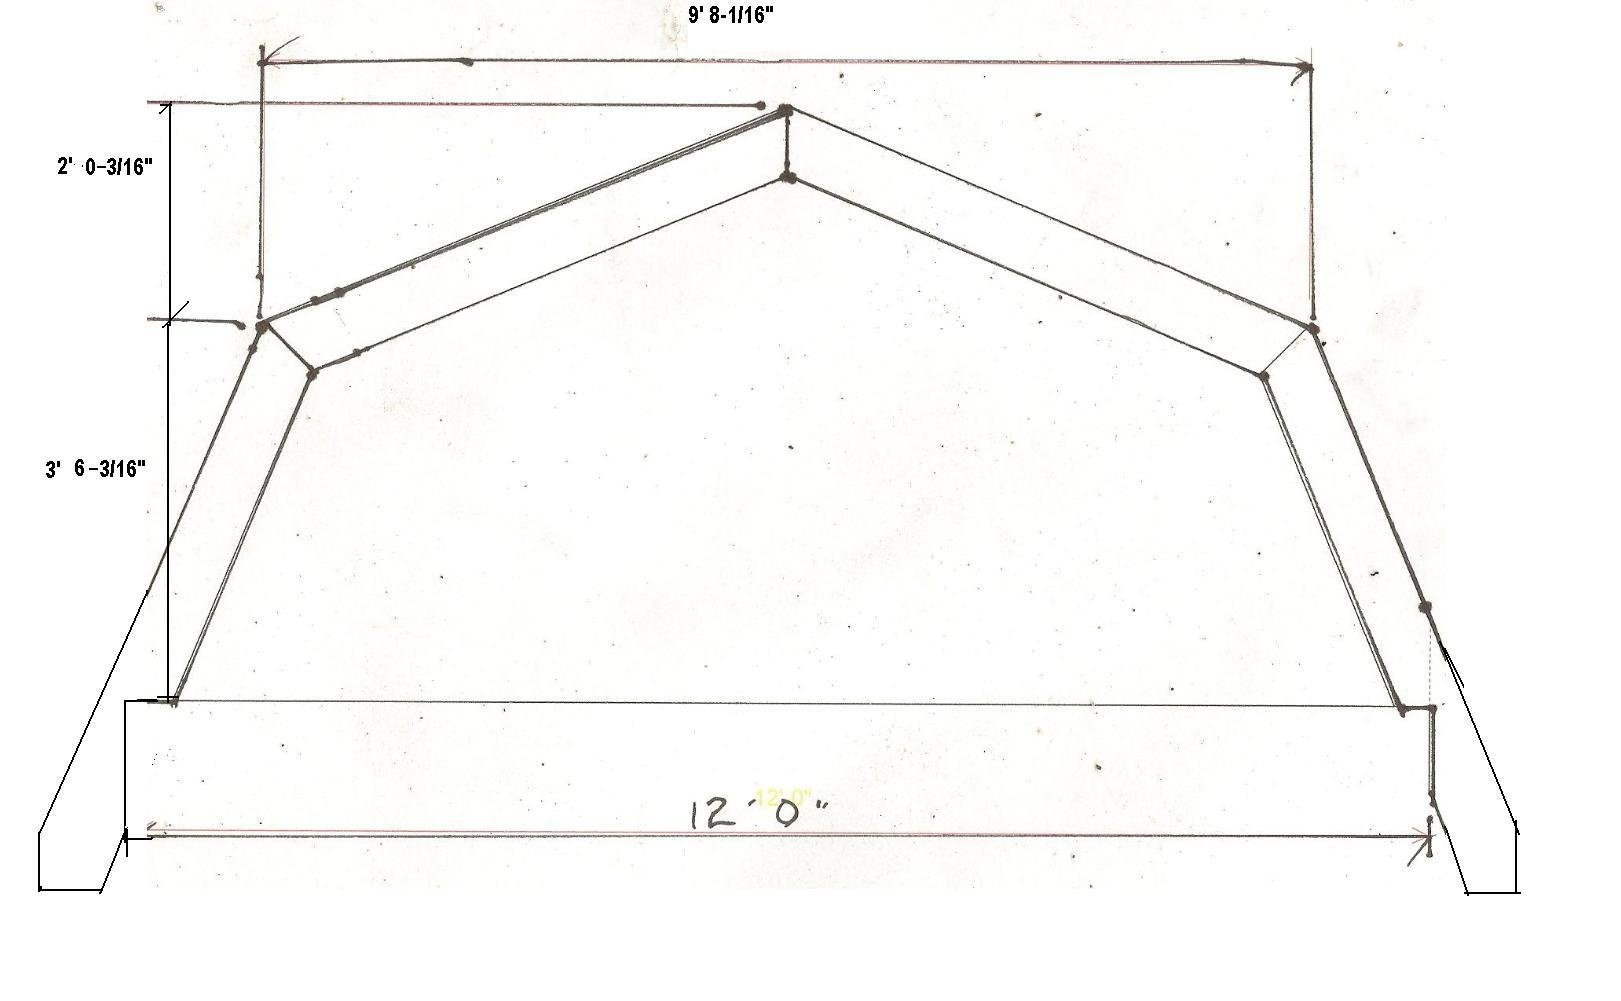 Pin gambrel roof angles on pinterest for How to build barn style roof trusses